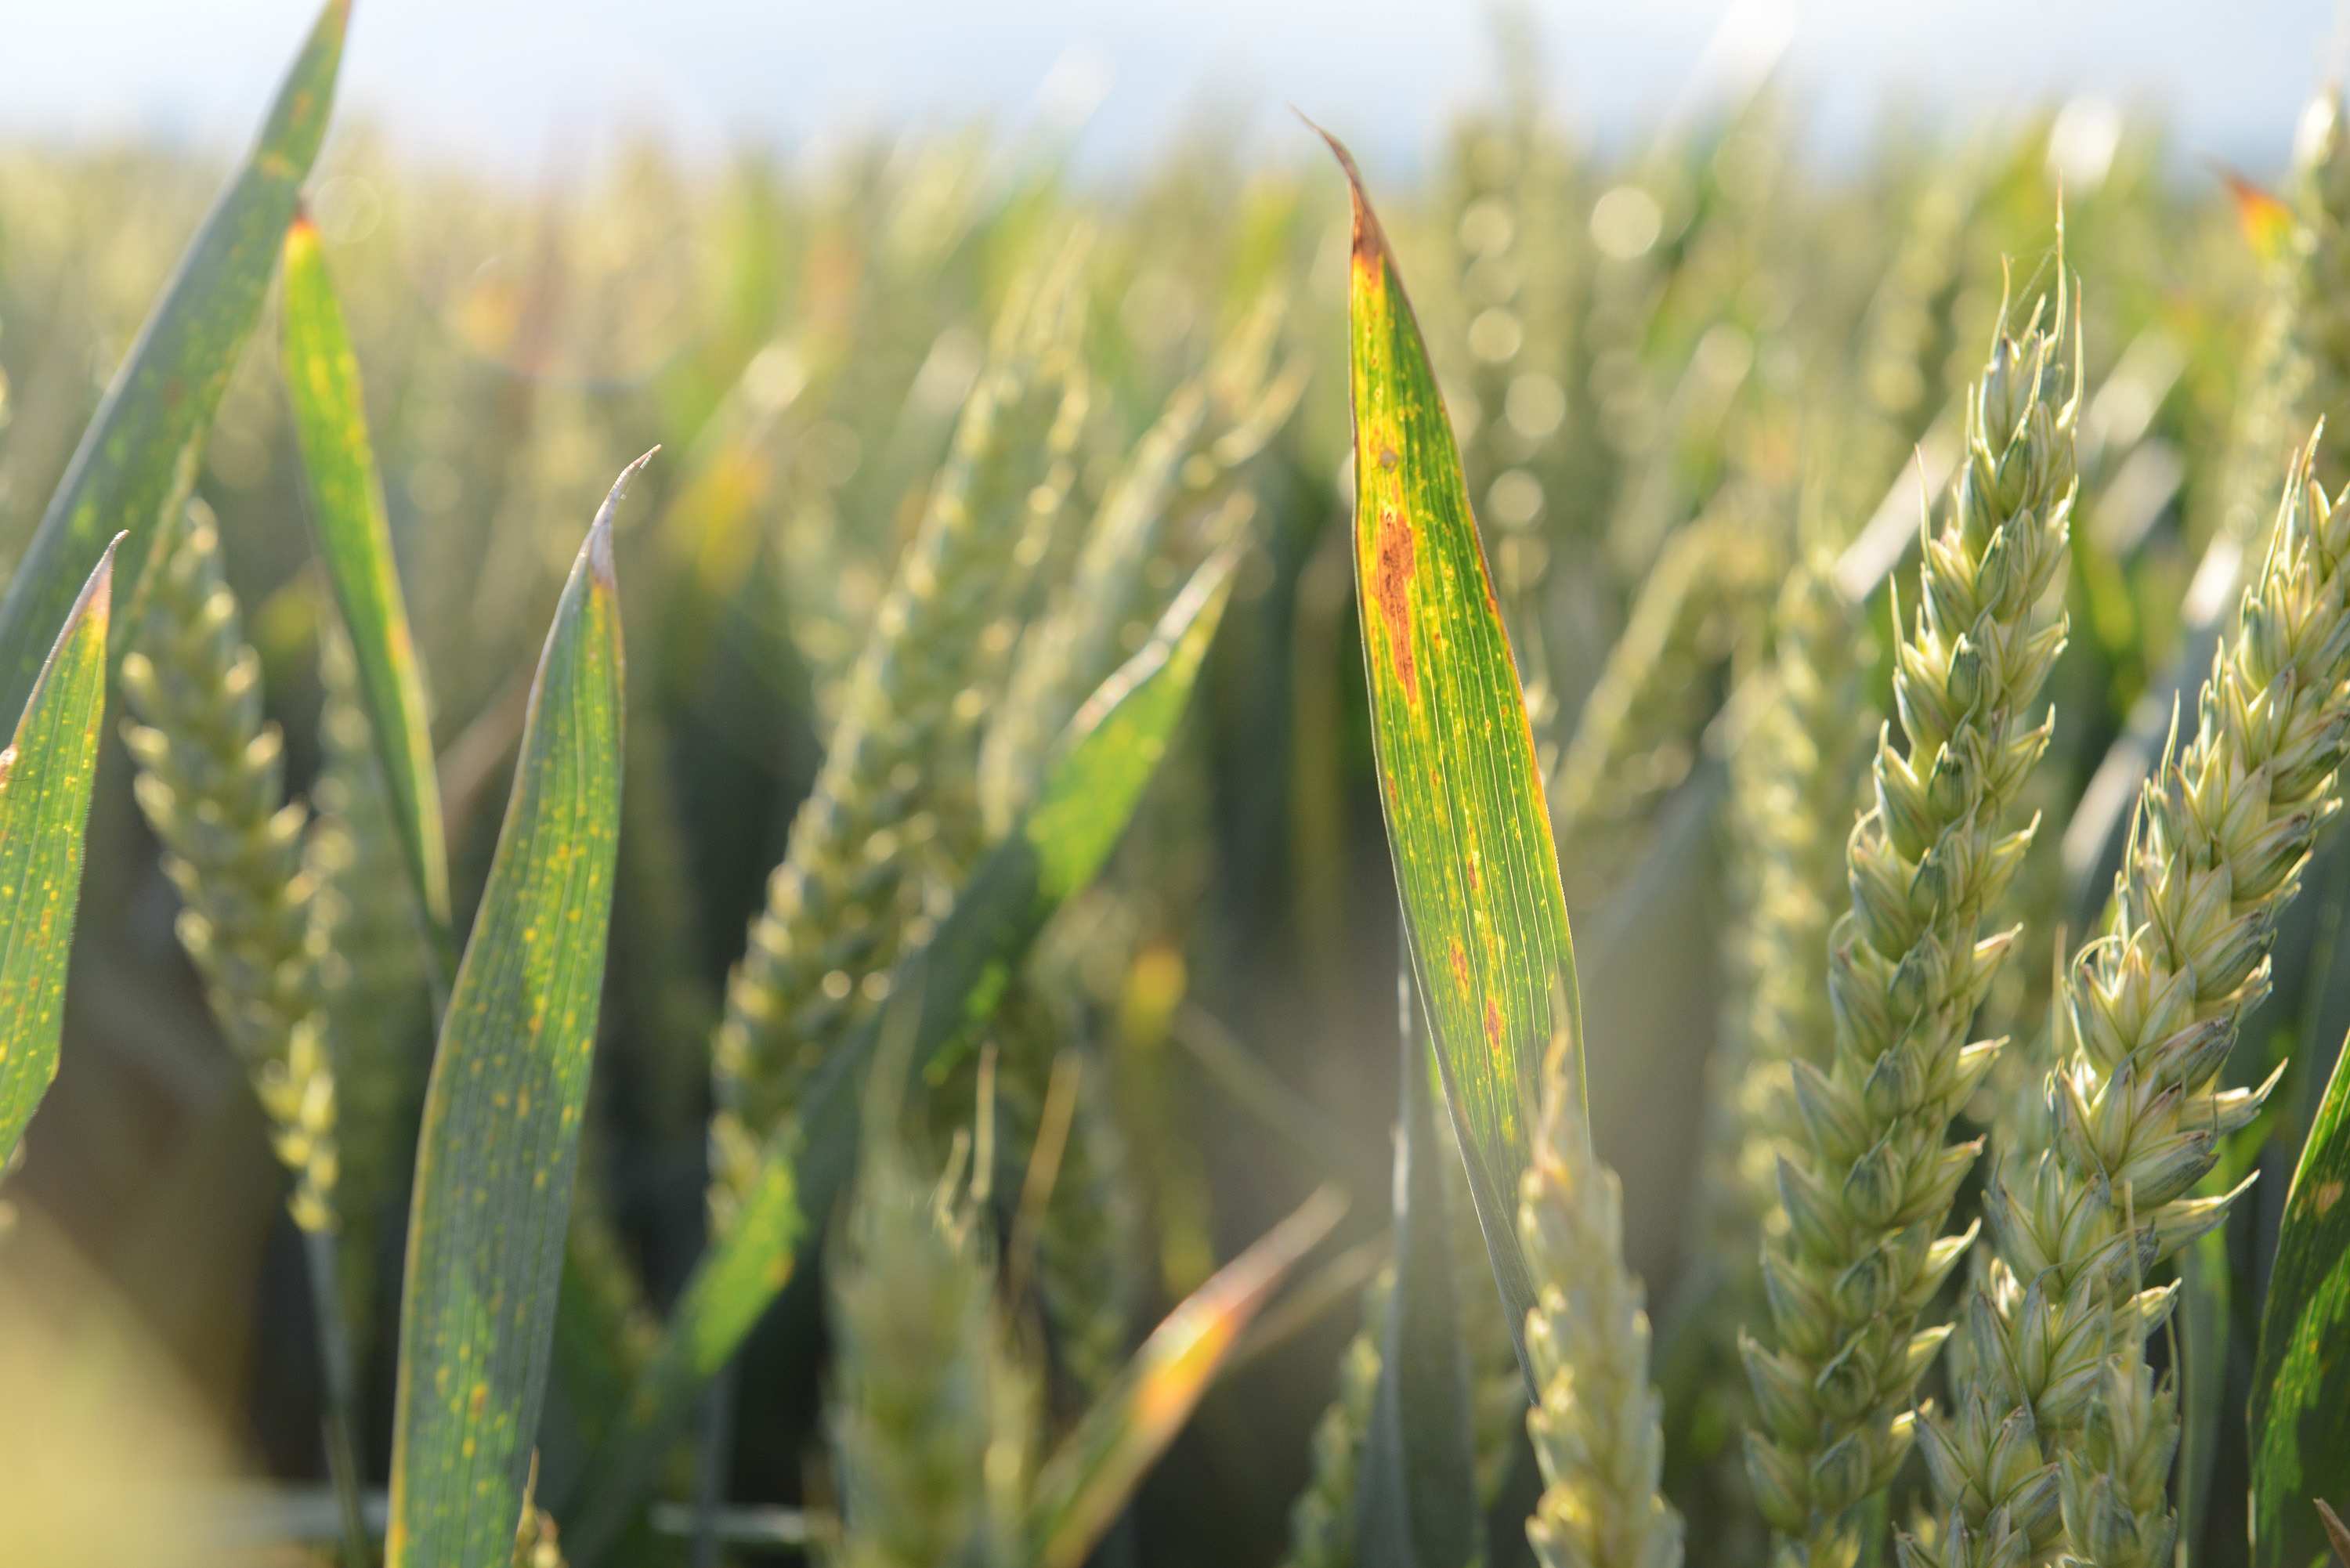 Cereal crops face high risk of BYDV infection this season